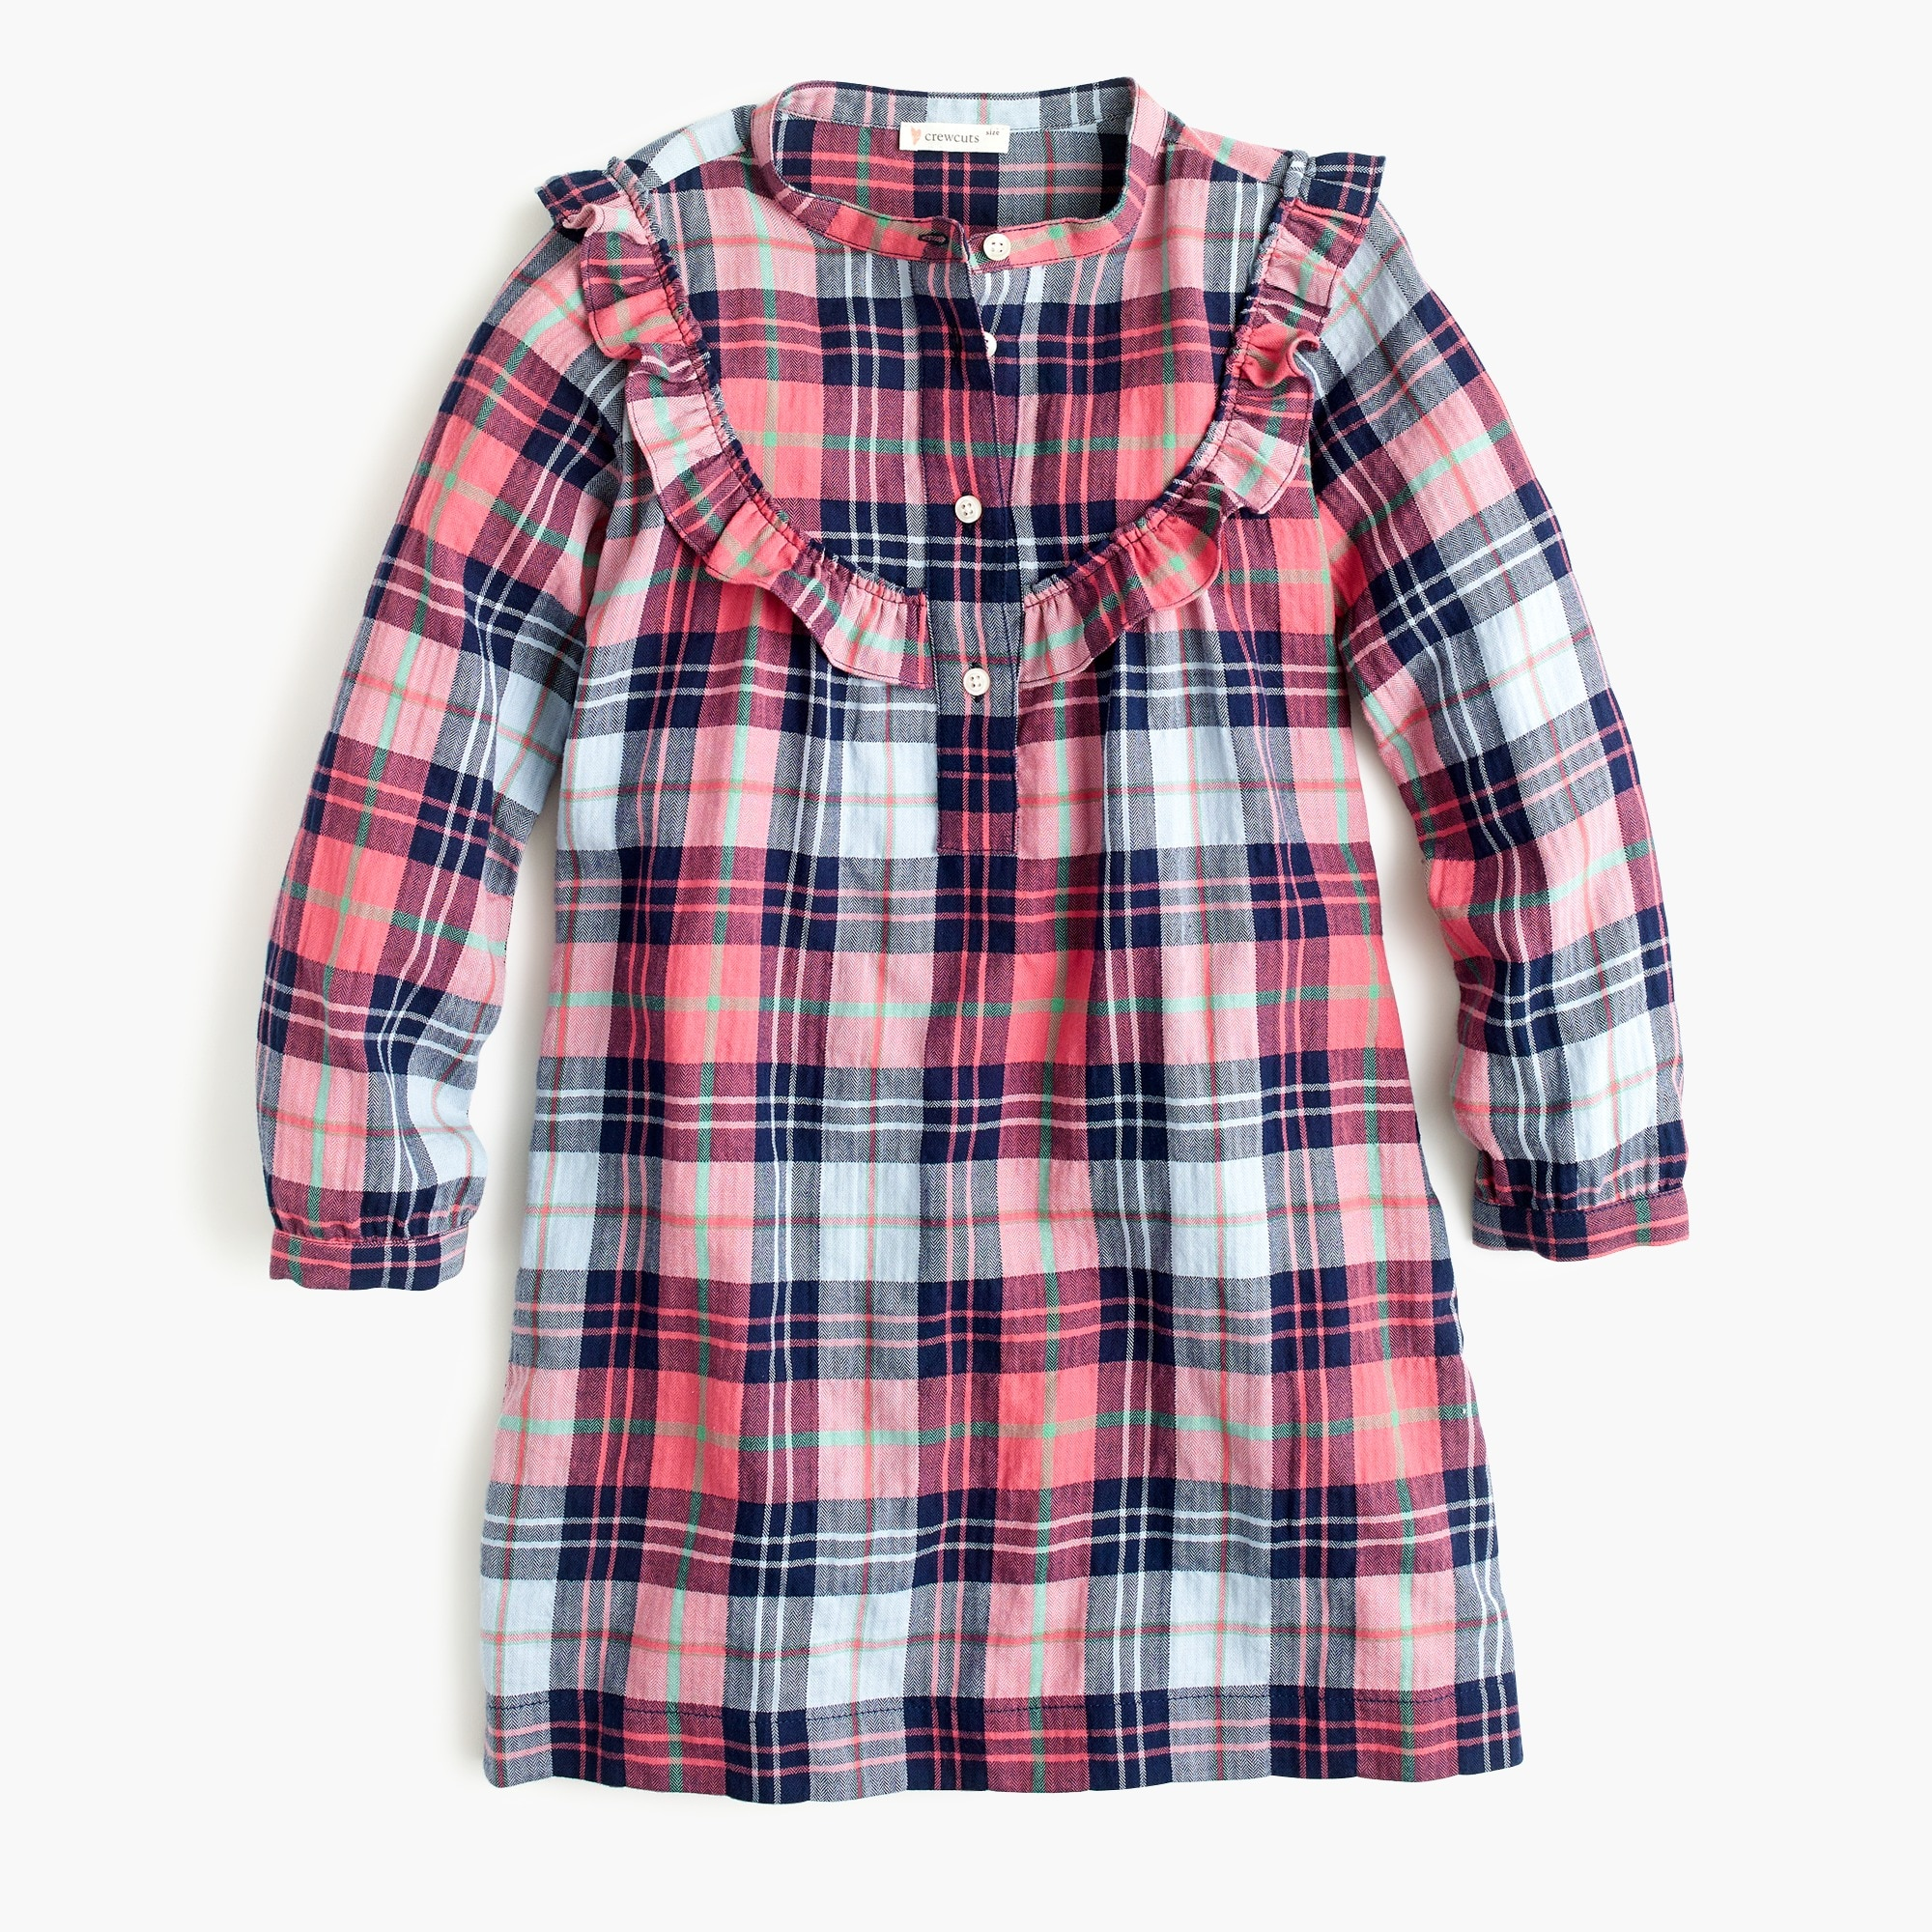 girls Girls' ruffle-trimmed shirtdress in plaid